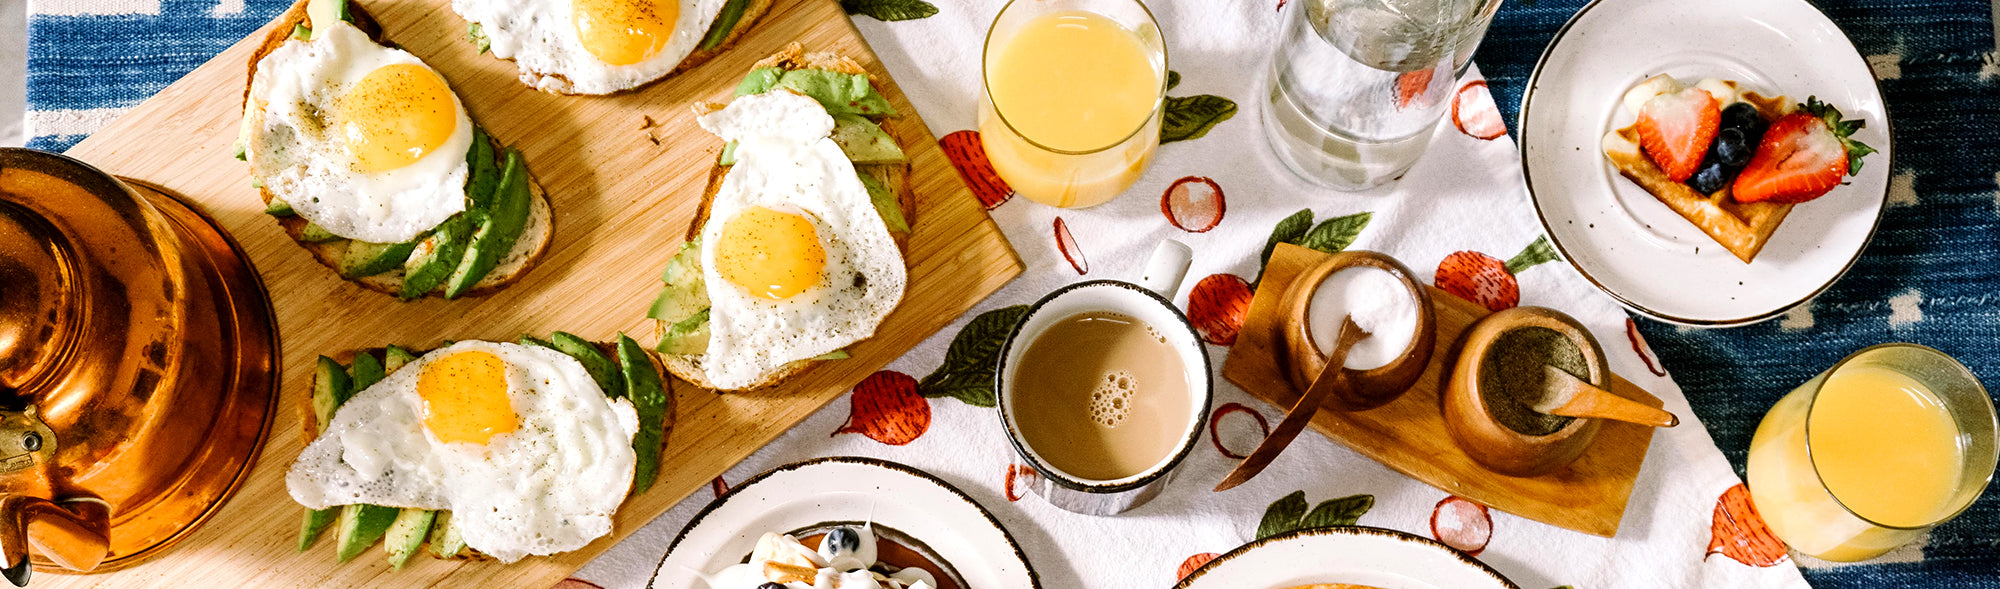 Best Bottomless Mimosa Brunch Spots in San Diego